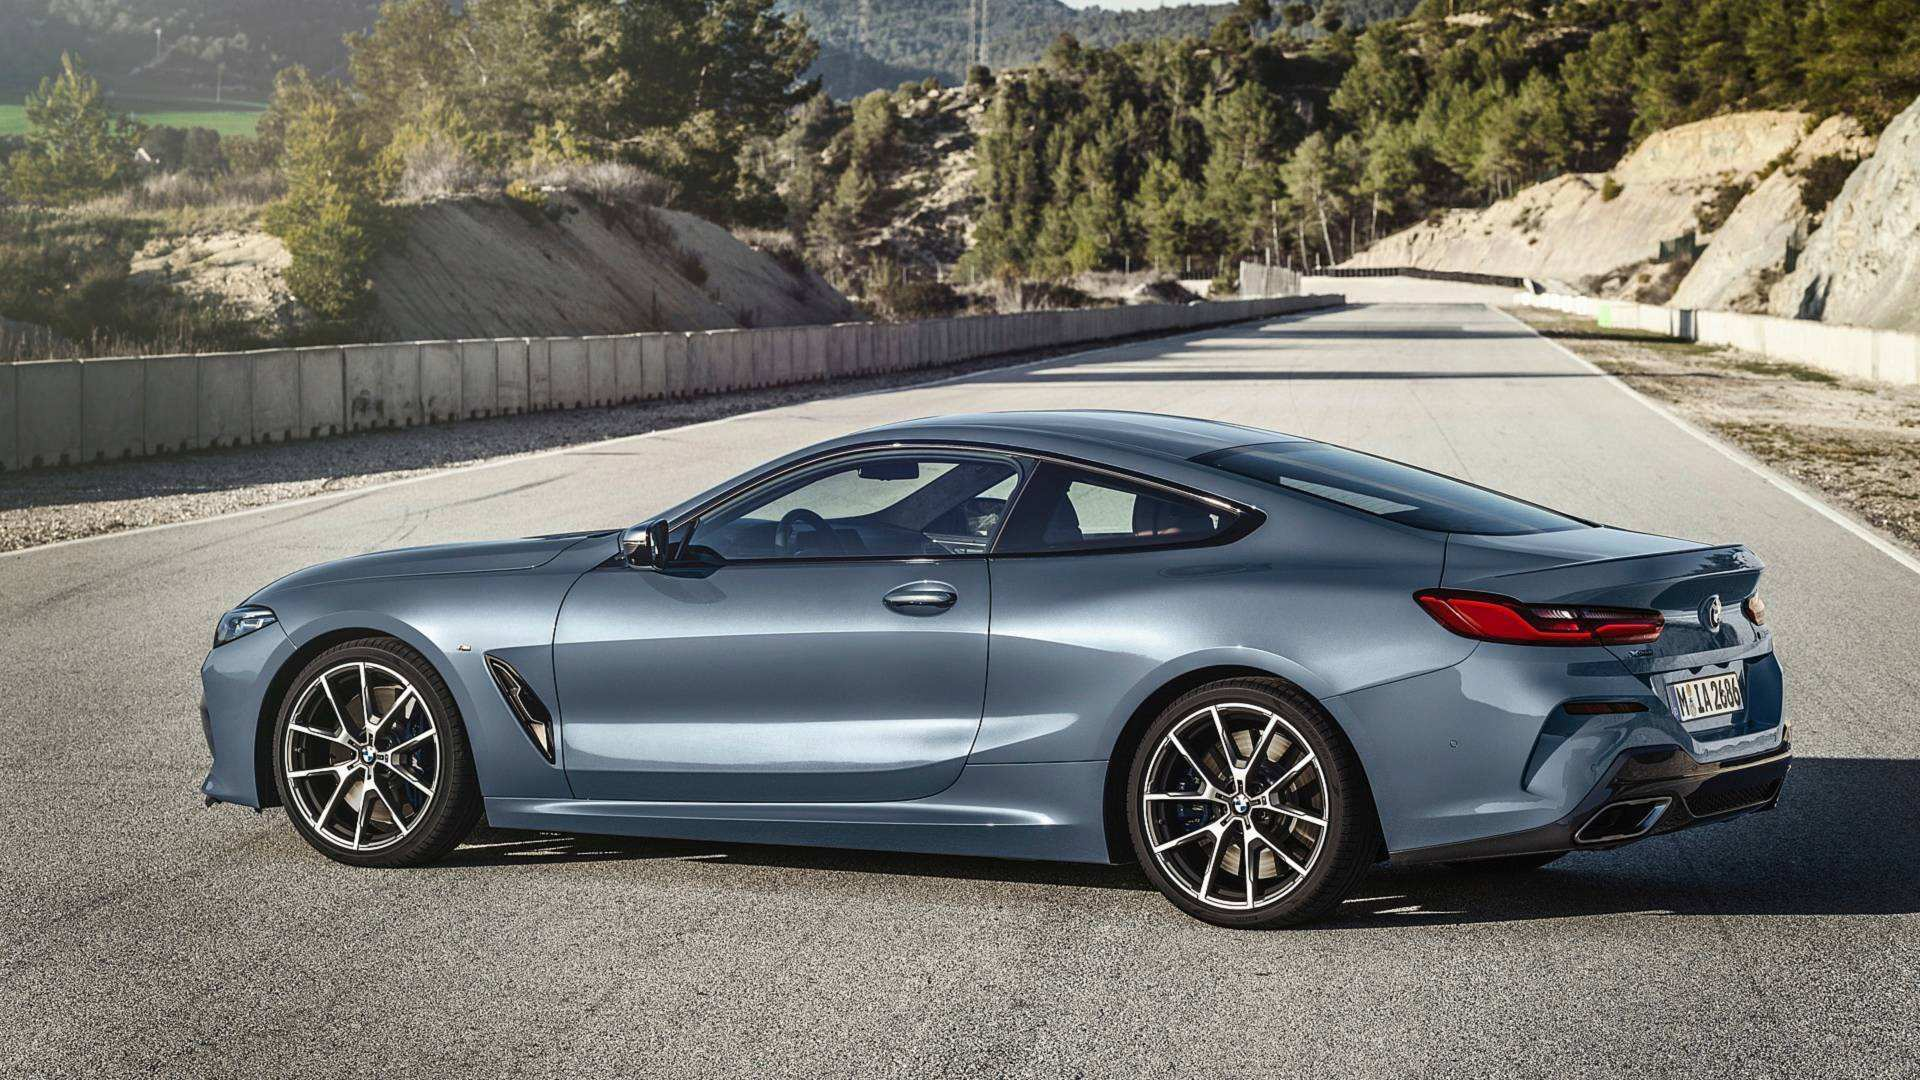 27 New 2019 Bmw 850I Specs with 2019 Bmw 850I